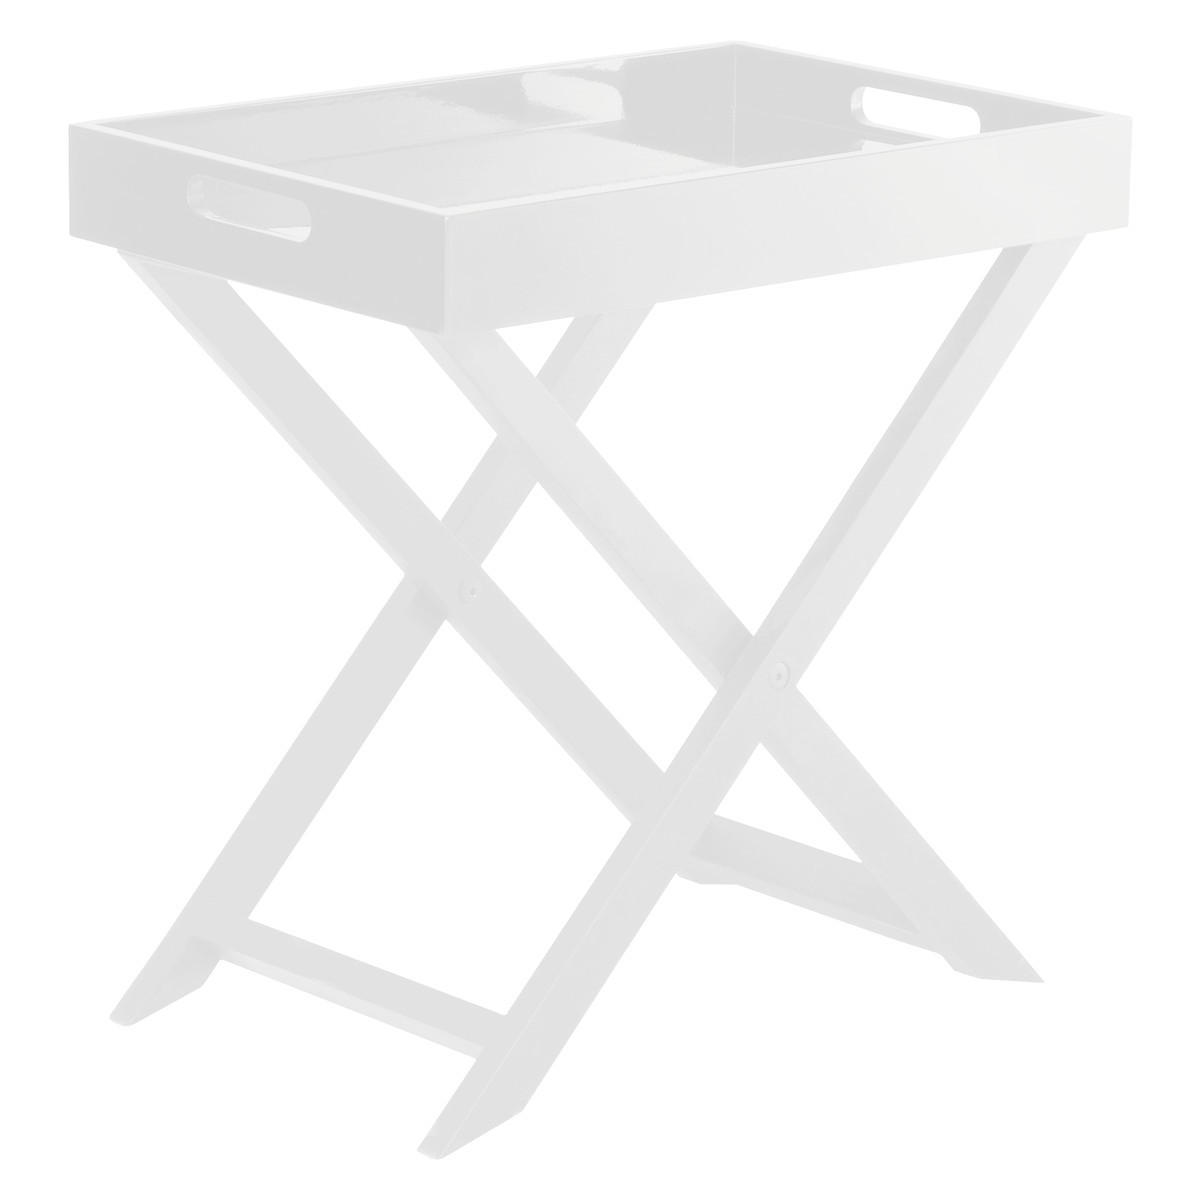 eye catching small white side table oken folding with removable tray top now patio accent amazing home entranching modern coffee tables and sofa end cocktail glass door cabinet